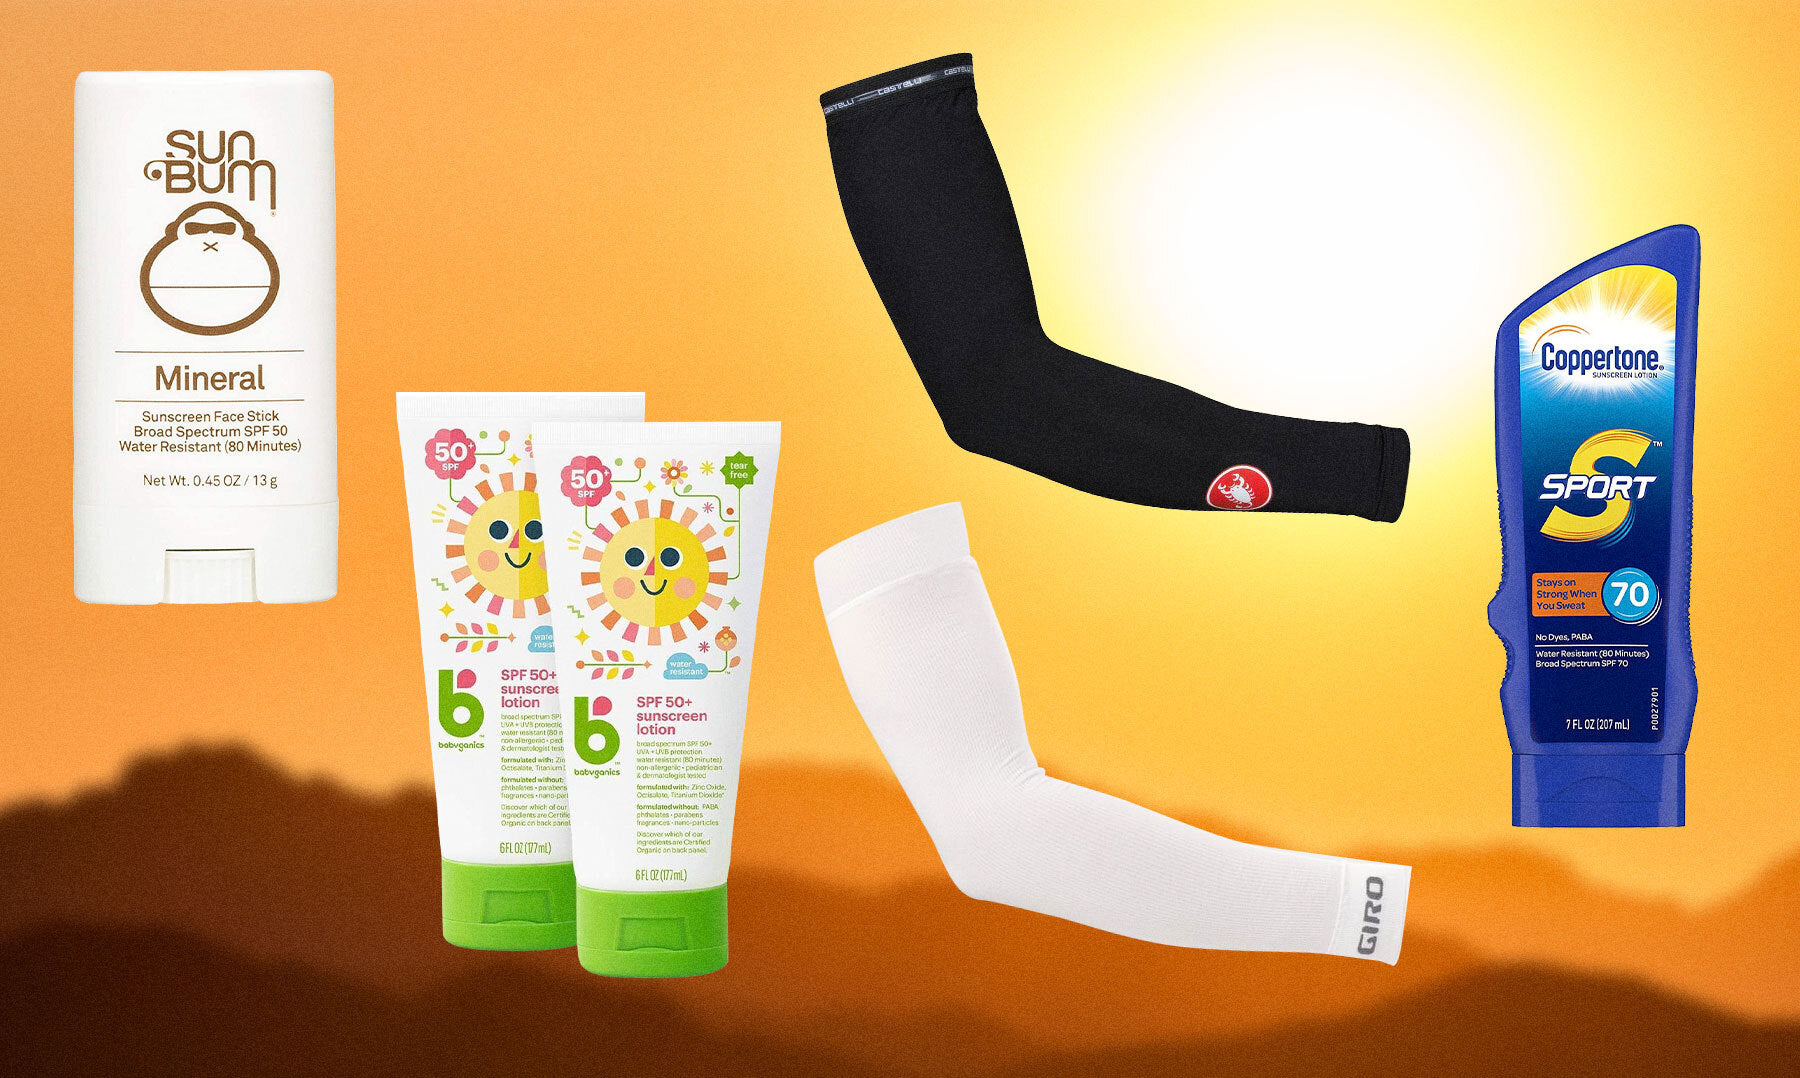 Best cycling sunscreen and sun sleeves